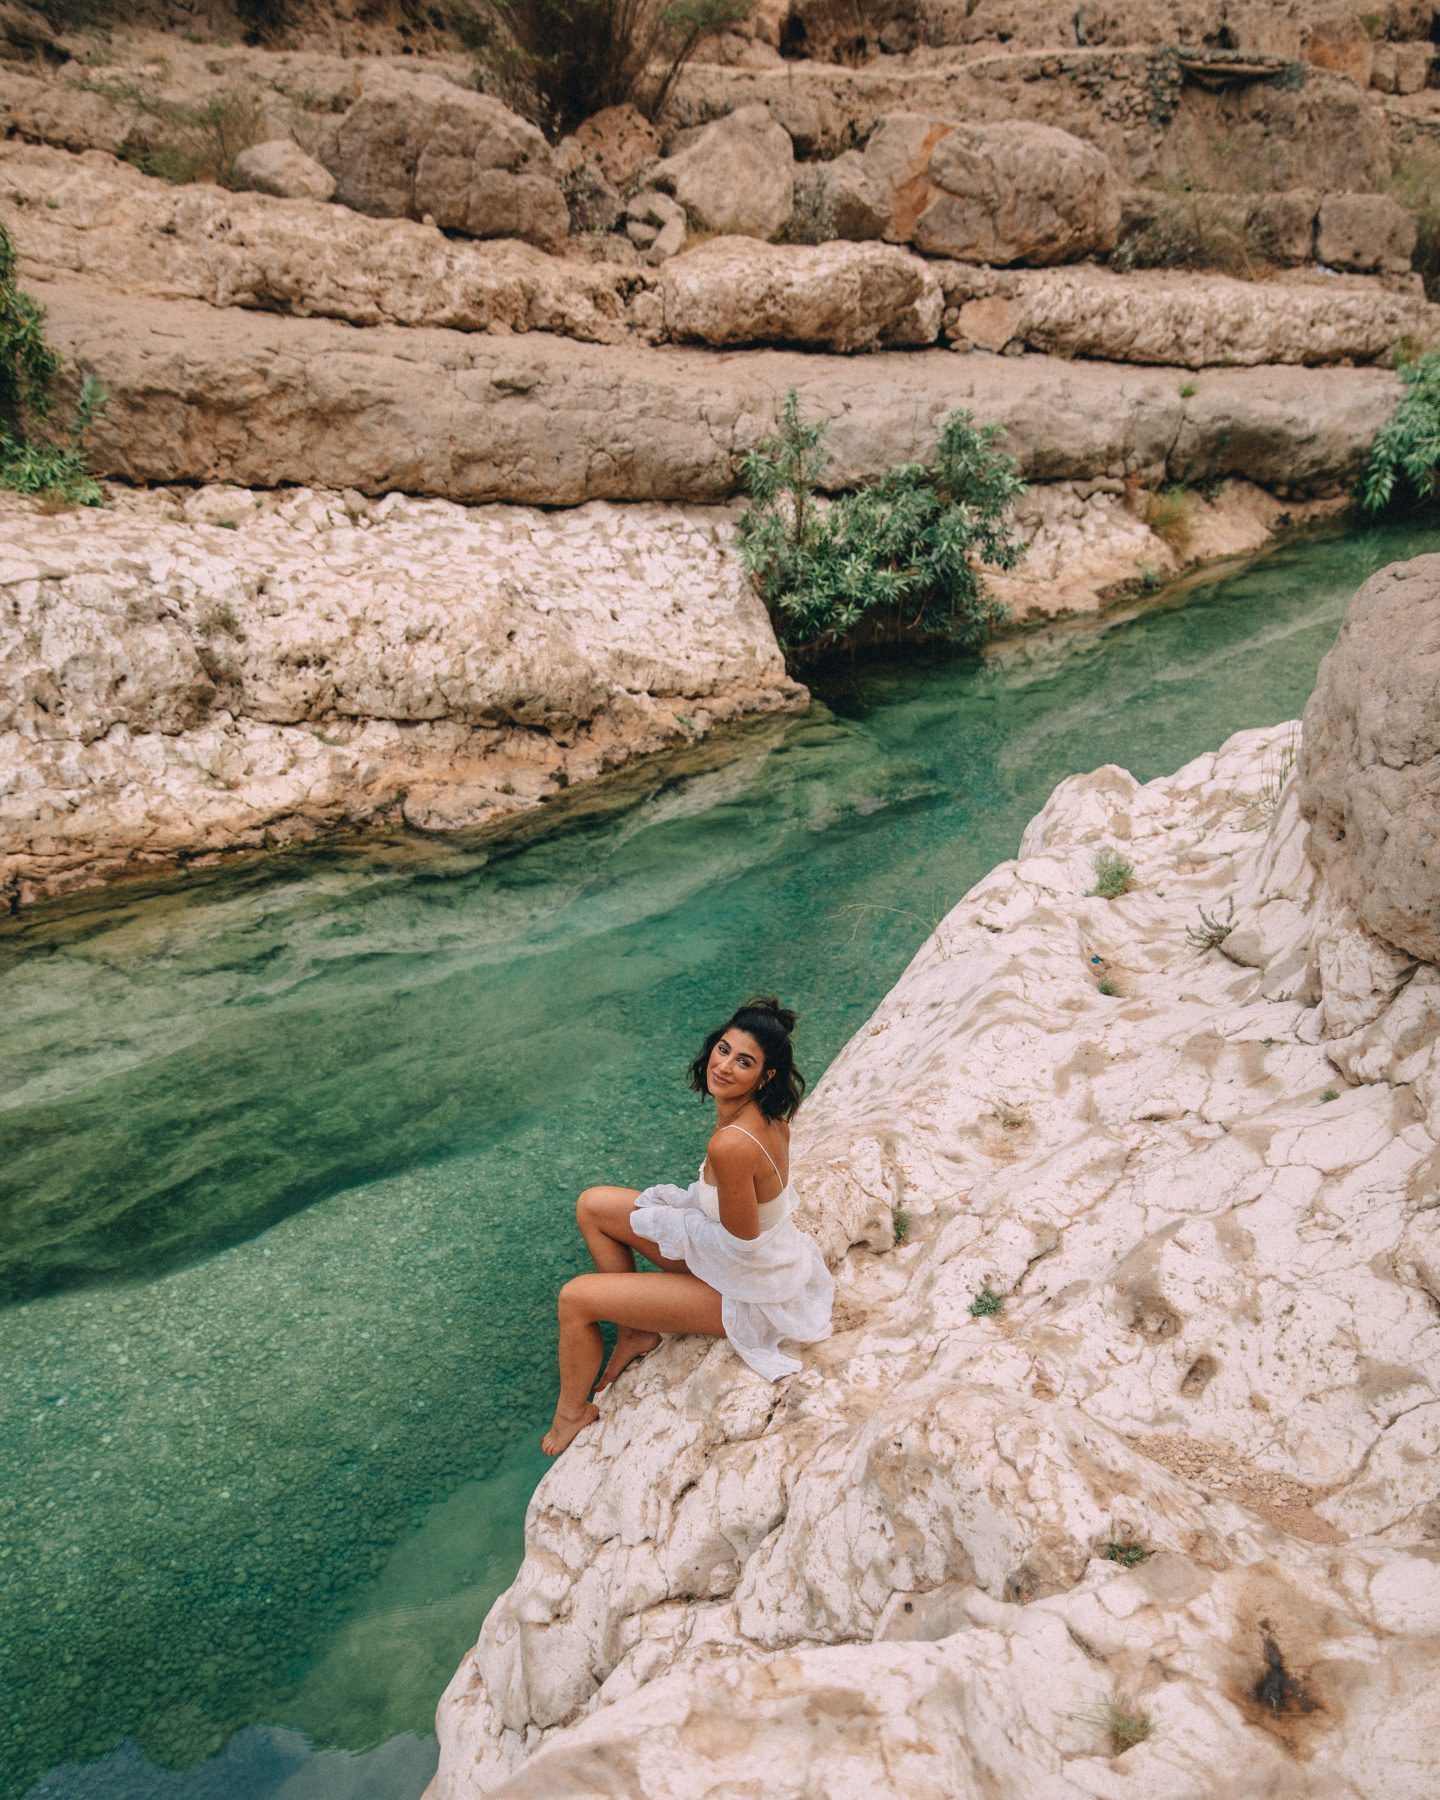 A woman sitting on the rocks in Wadi Shab, Oman